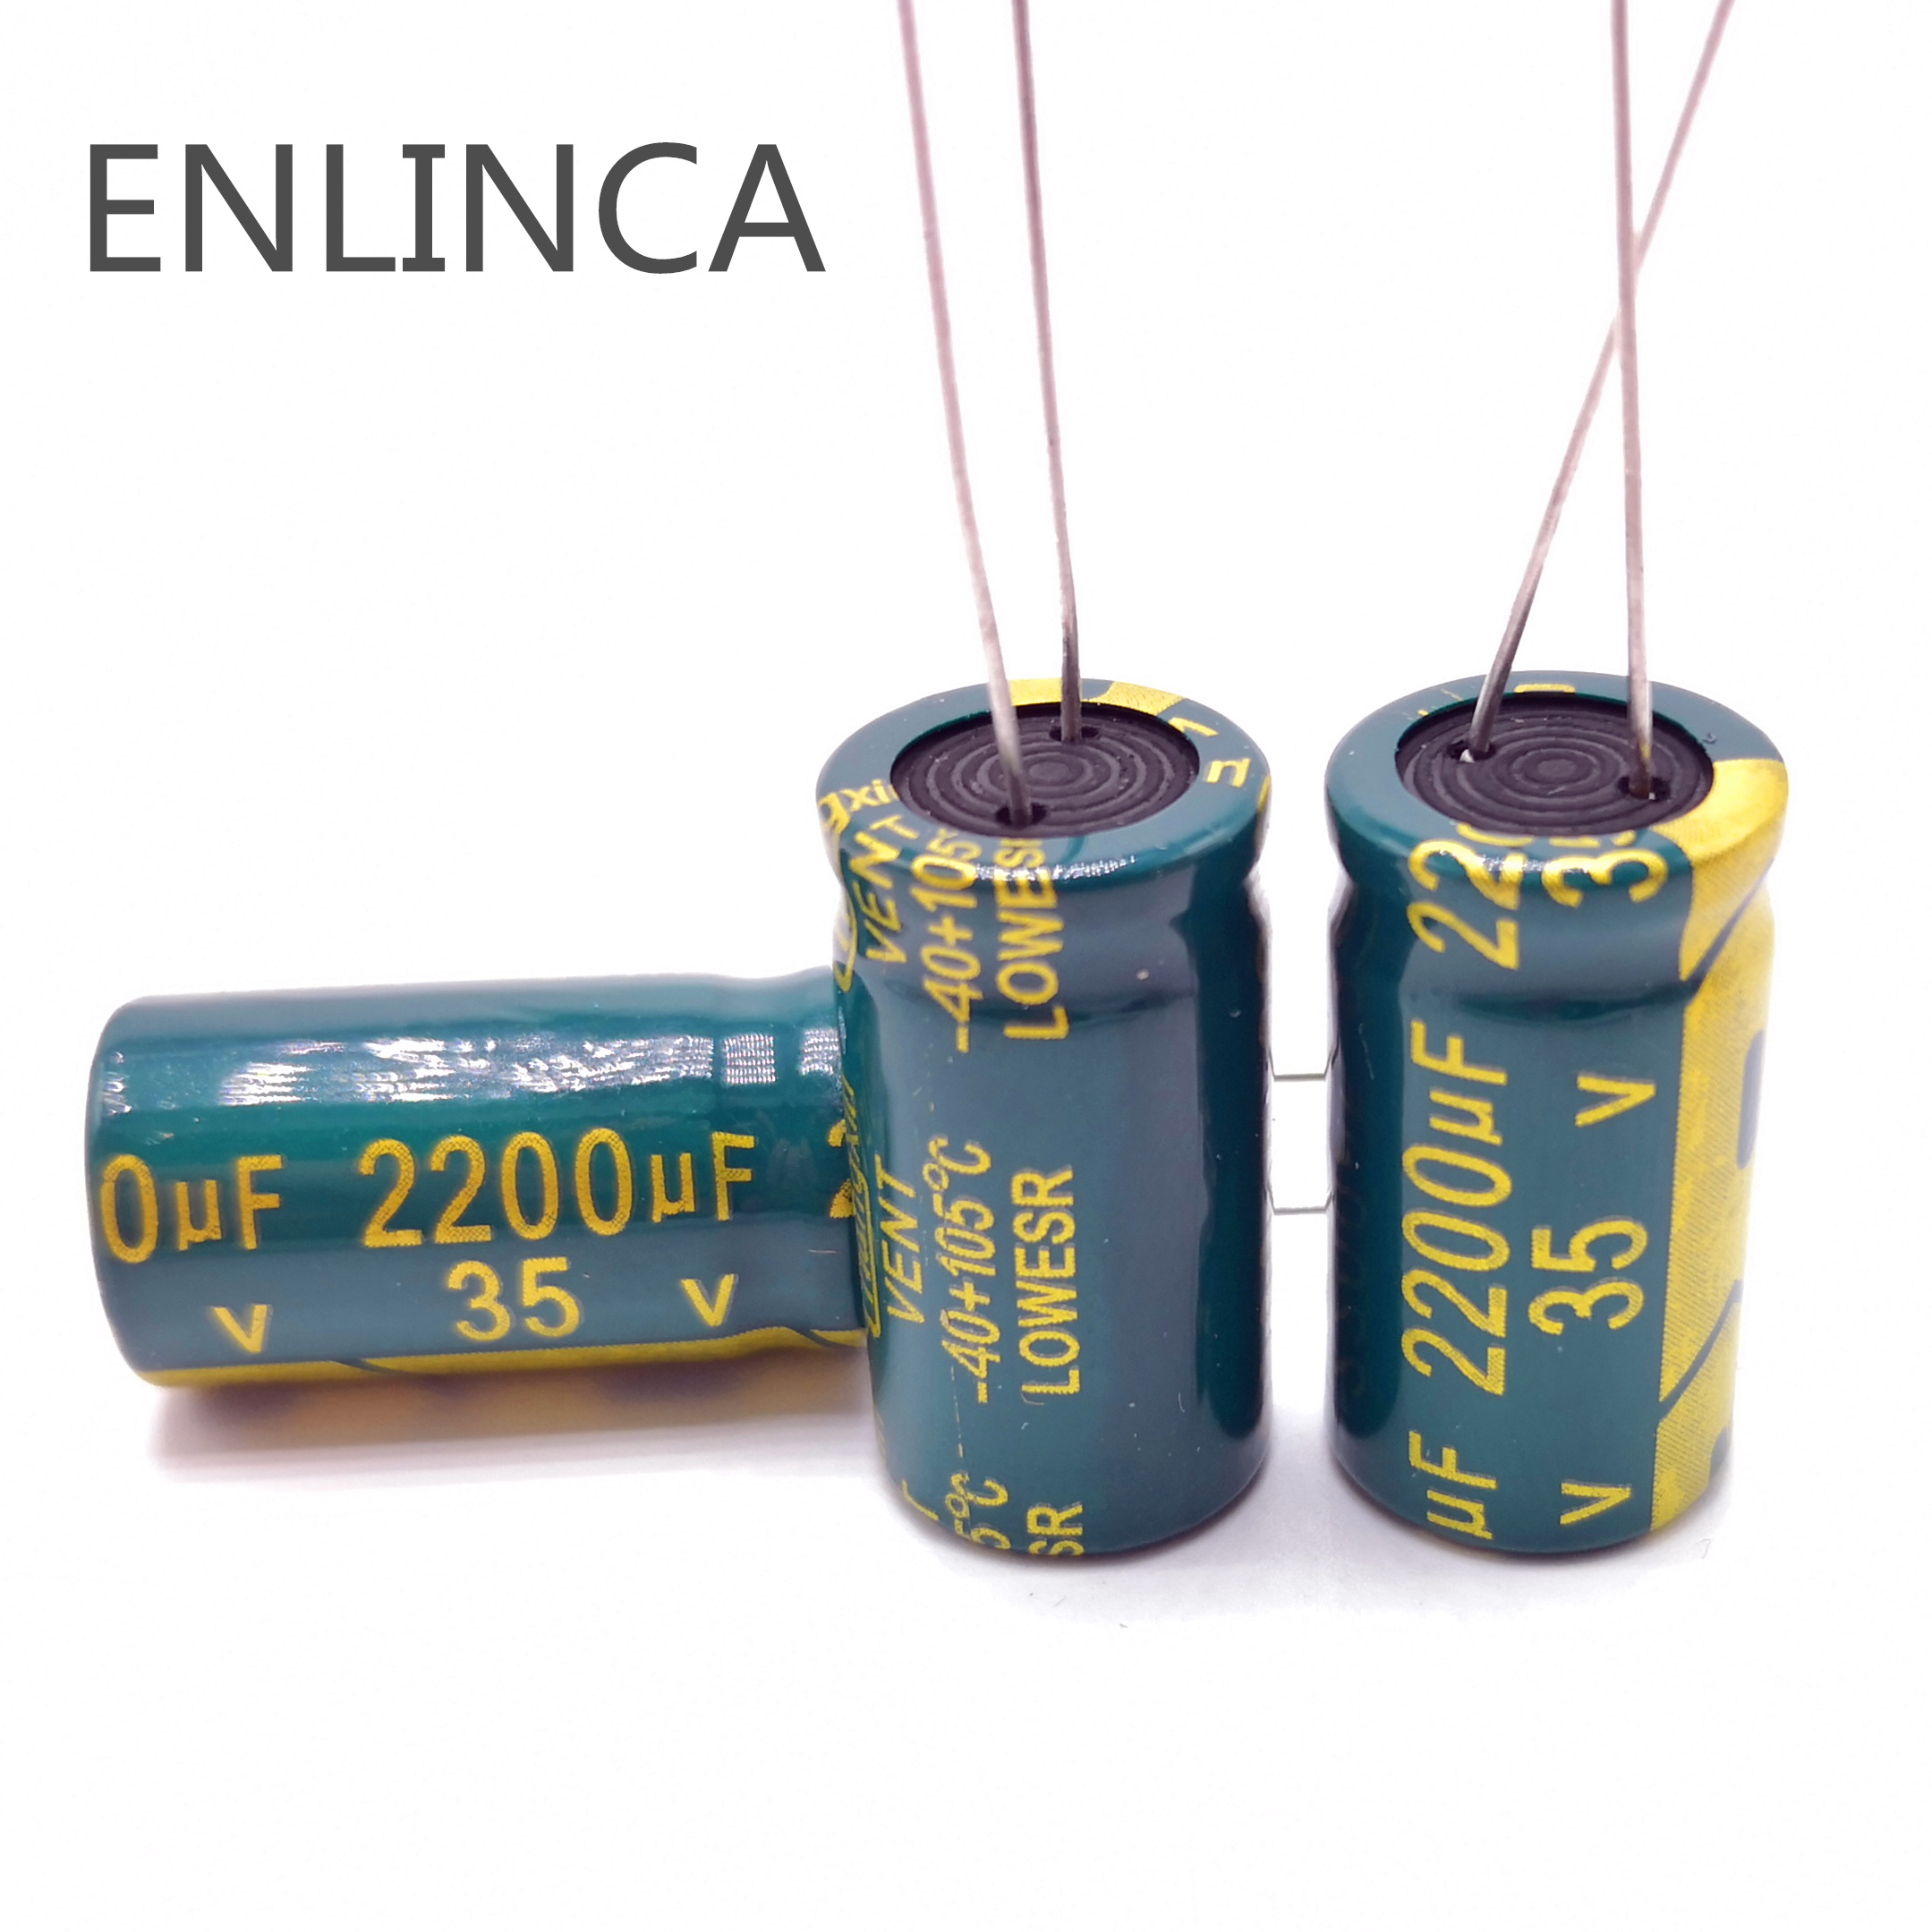 110pcs/lot H205 Low ESR/Impedance High Frequency 35v 2200UF Aluminum Electrolytic Capacitor Size 13*25 2200UF35V 20%